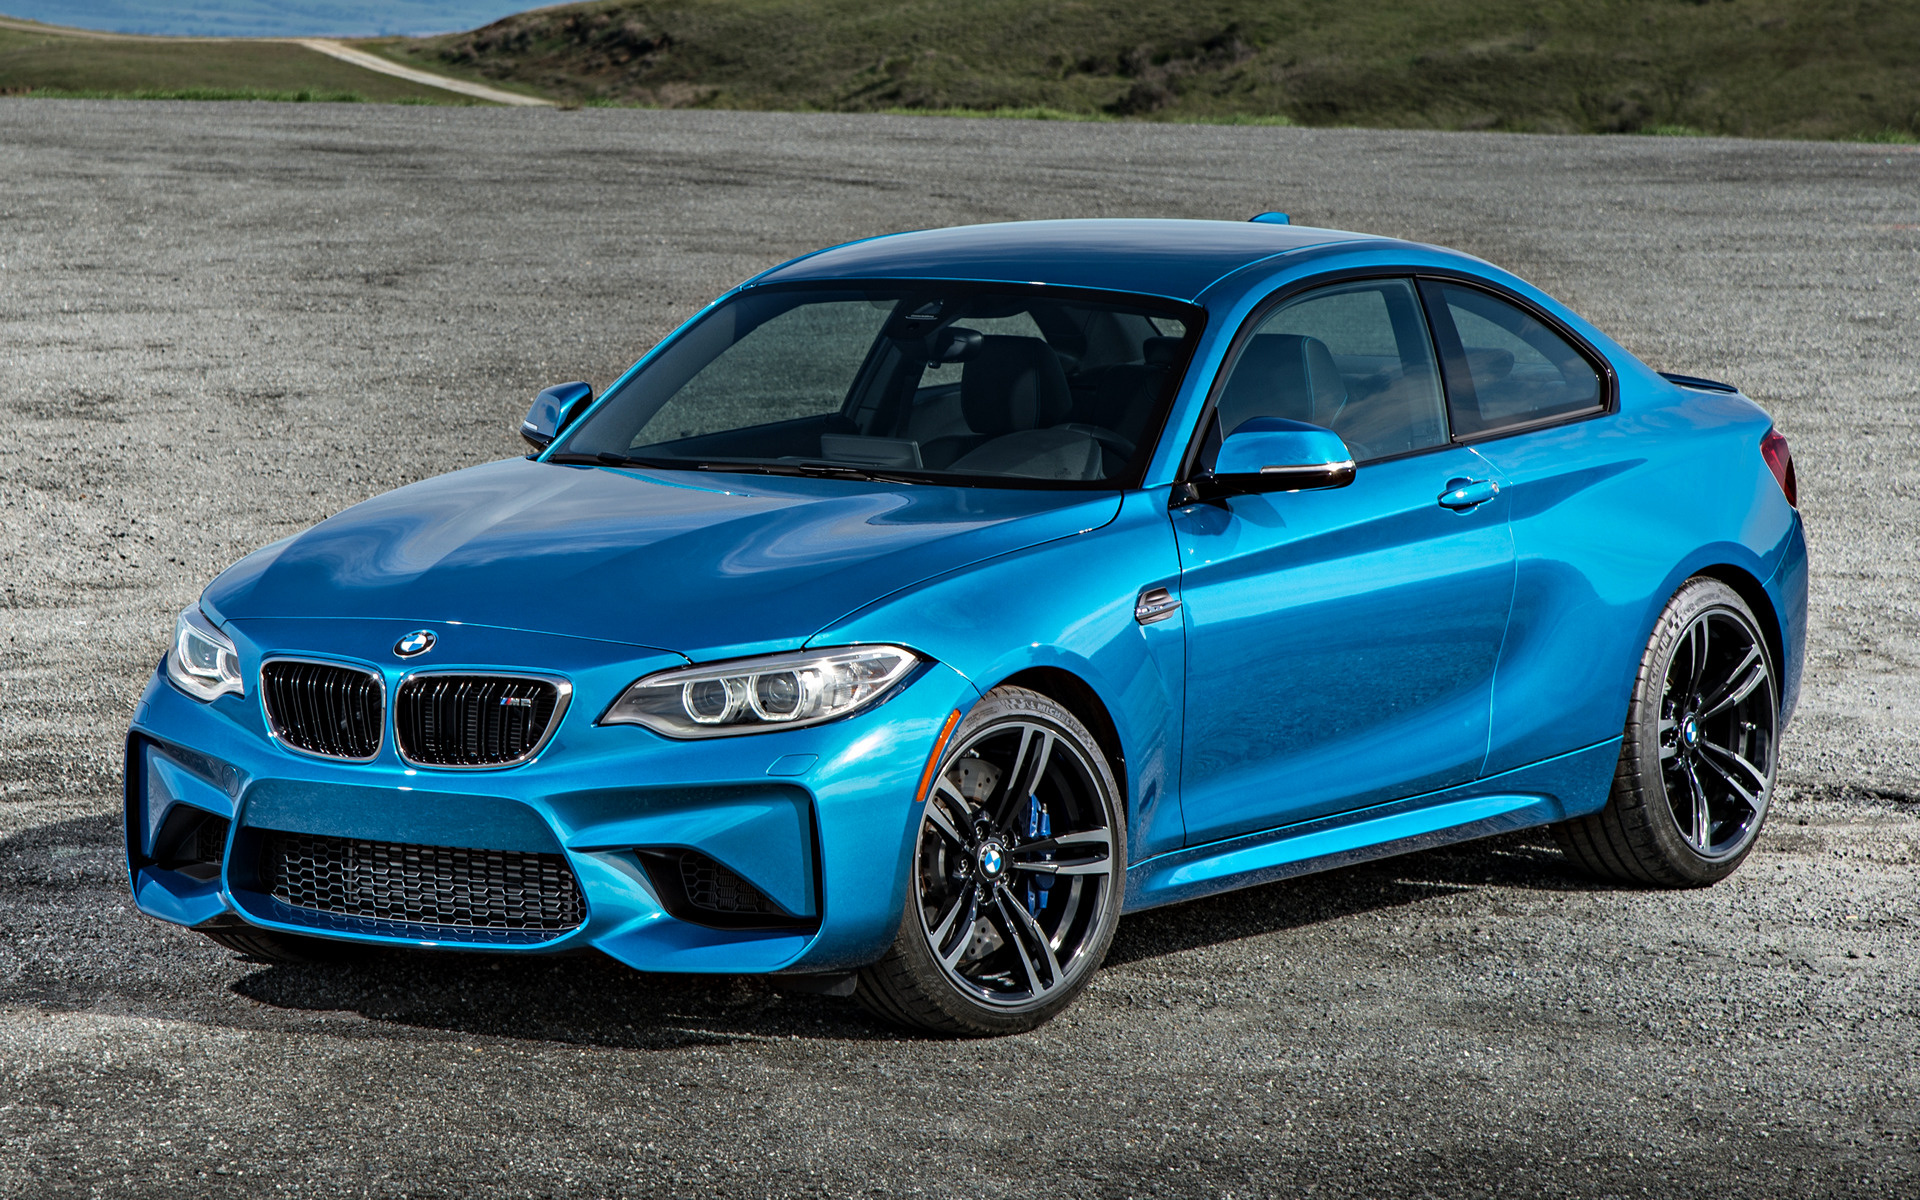 BMW M2 Coupe (2016) US Wallpapers and HD Images - Car Pixel